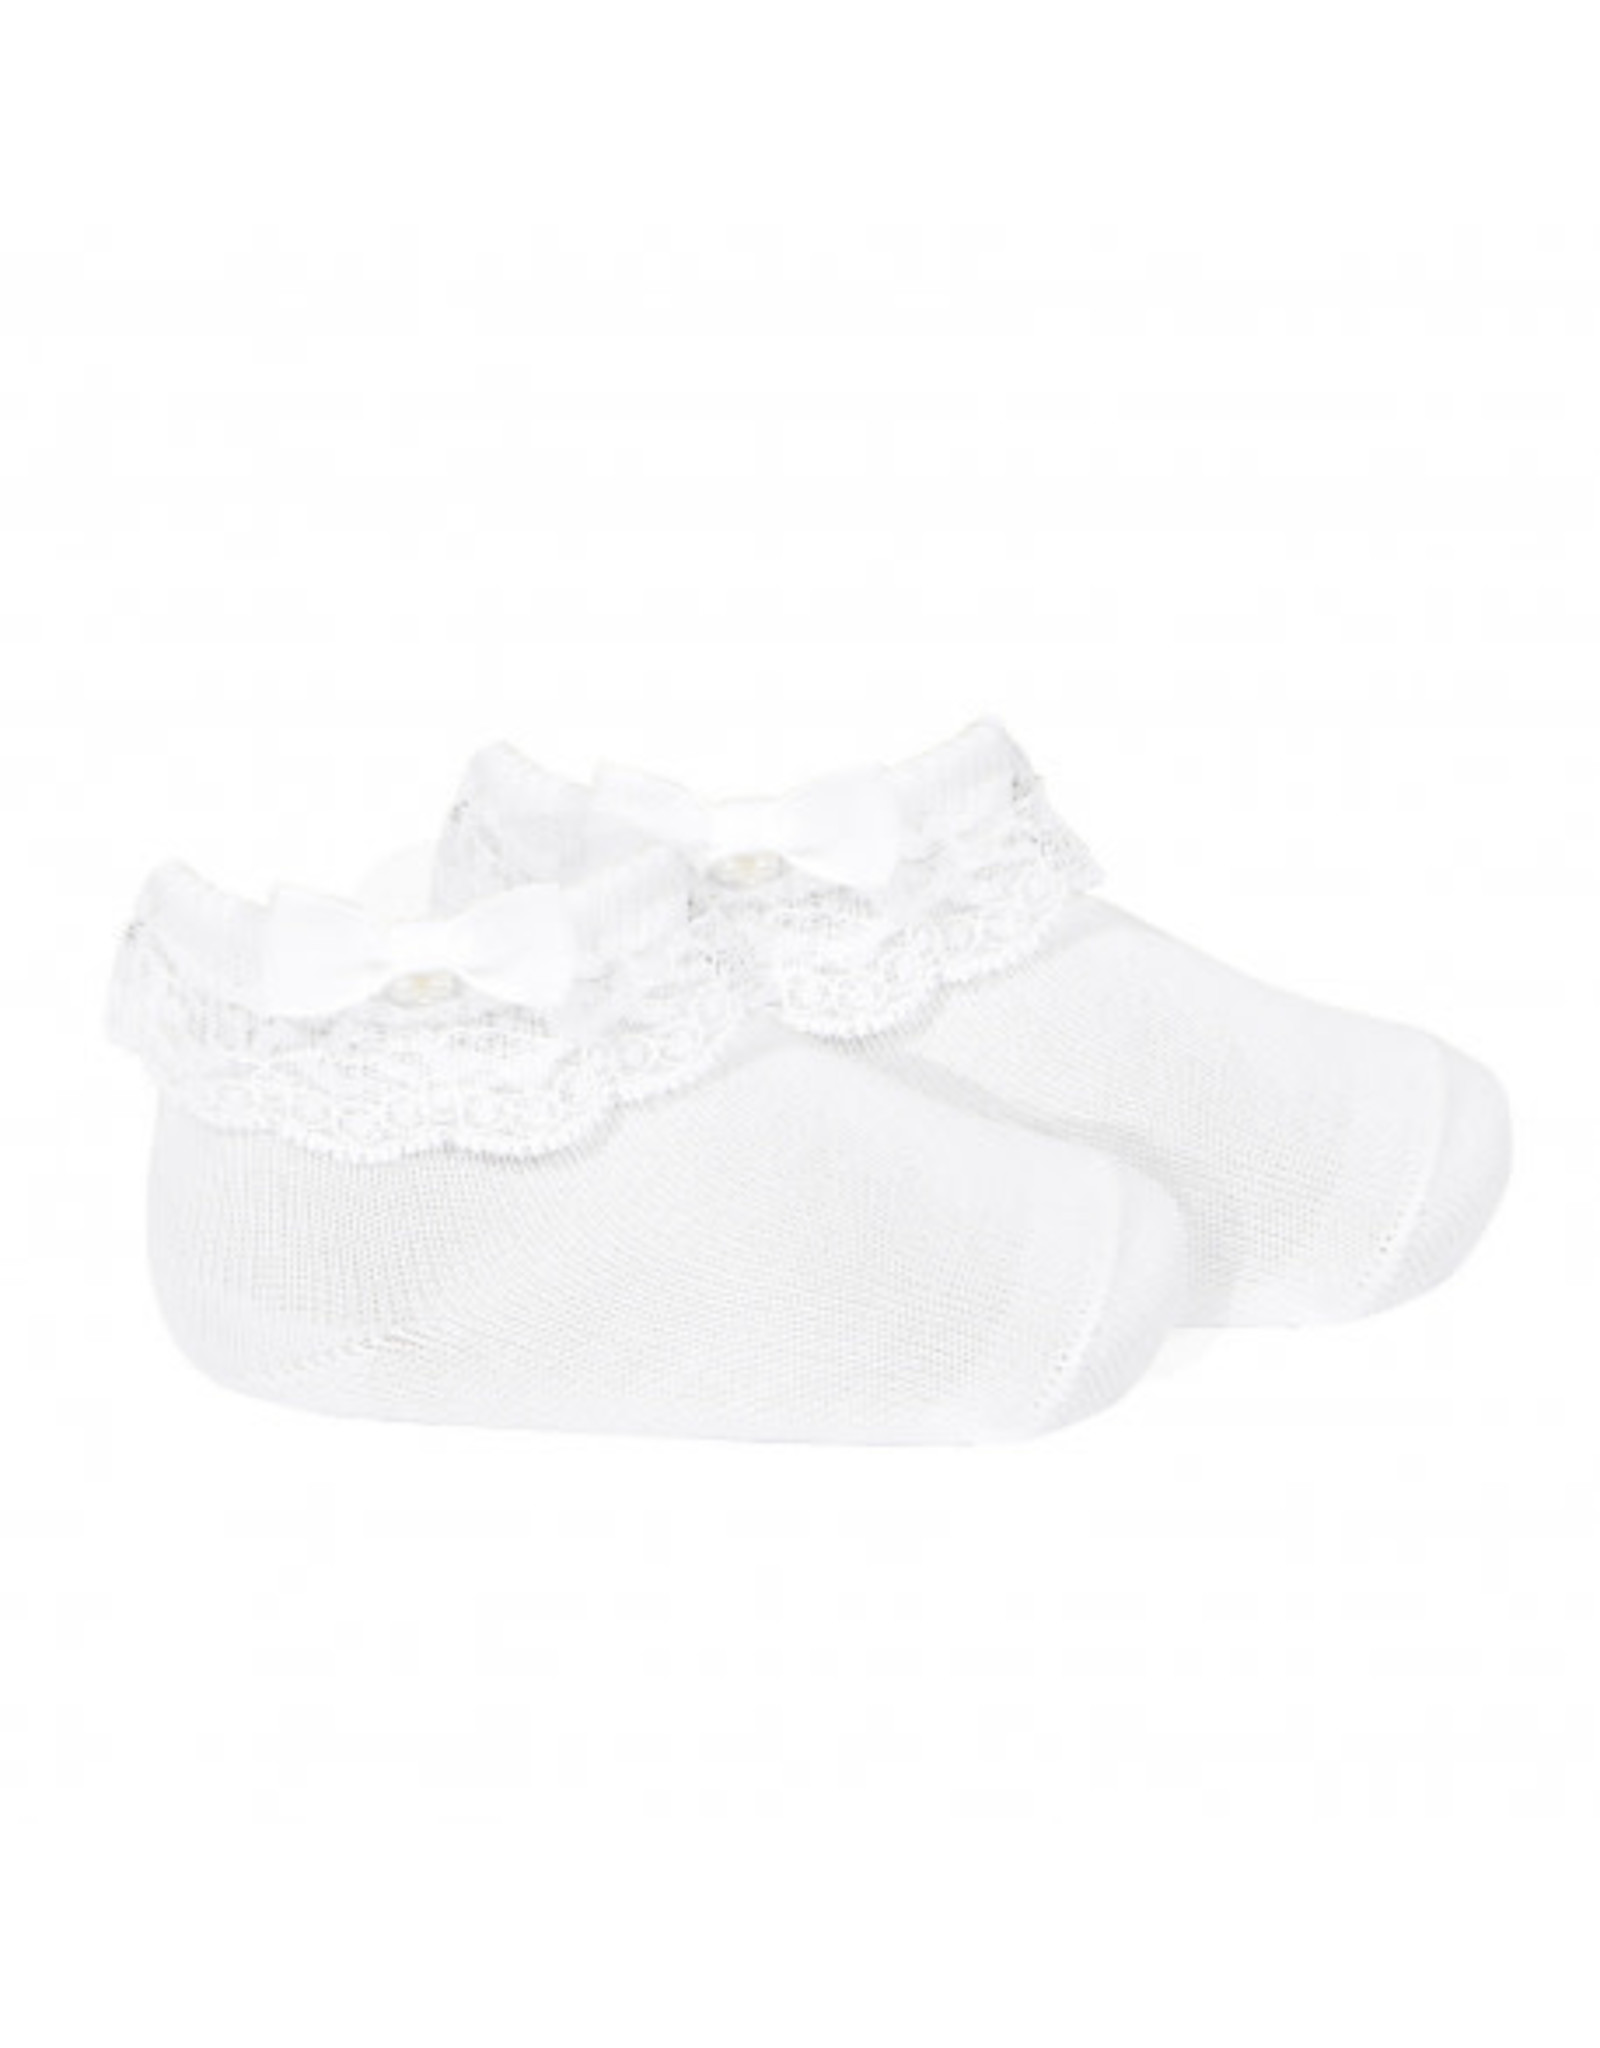 CONDOR Lace Ankle Socks with Folded Cuff